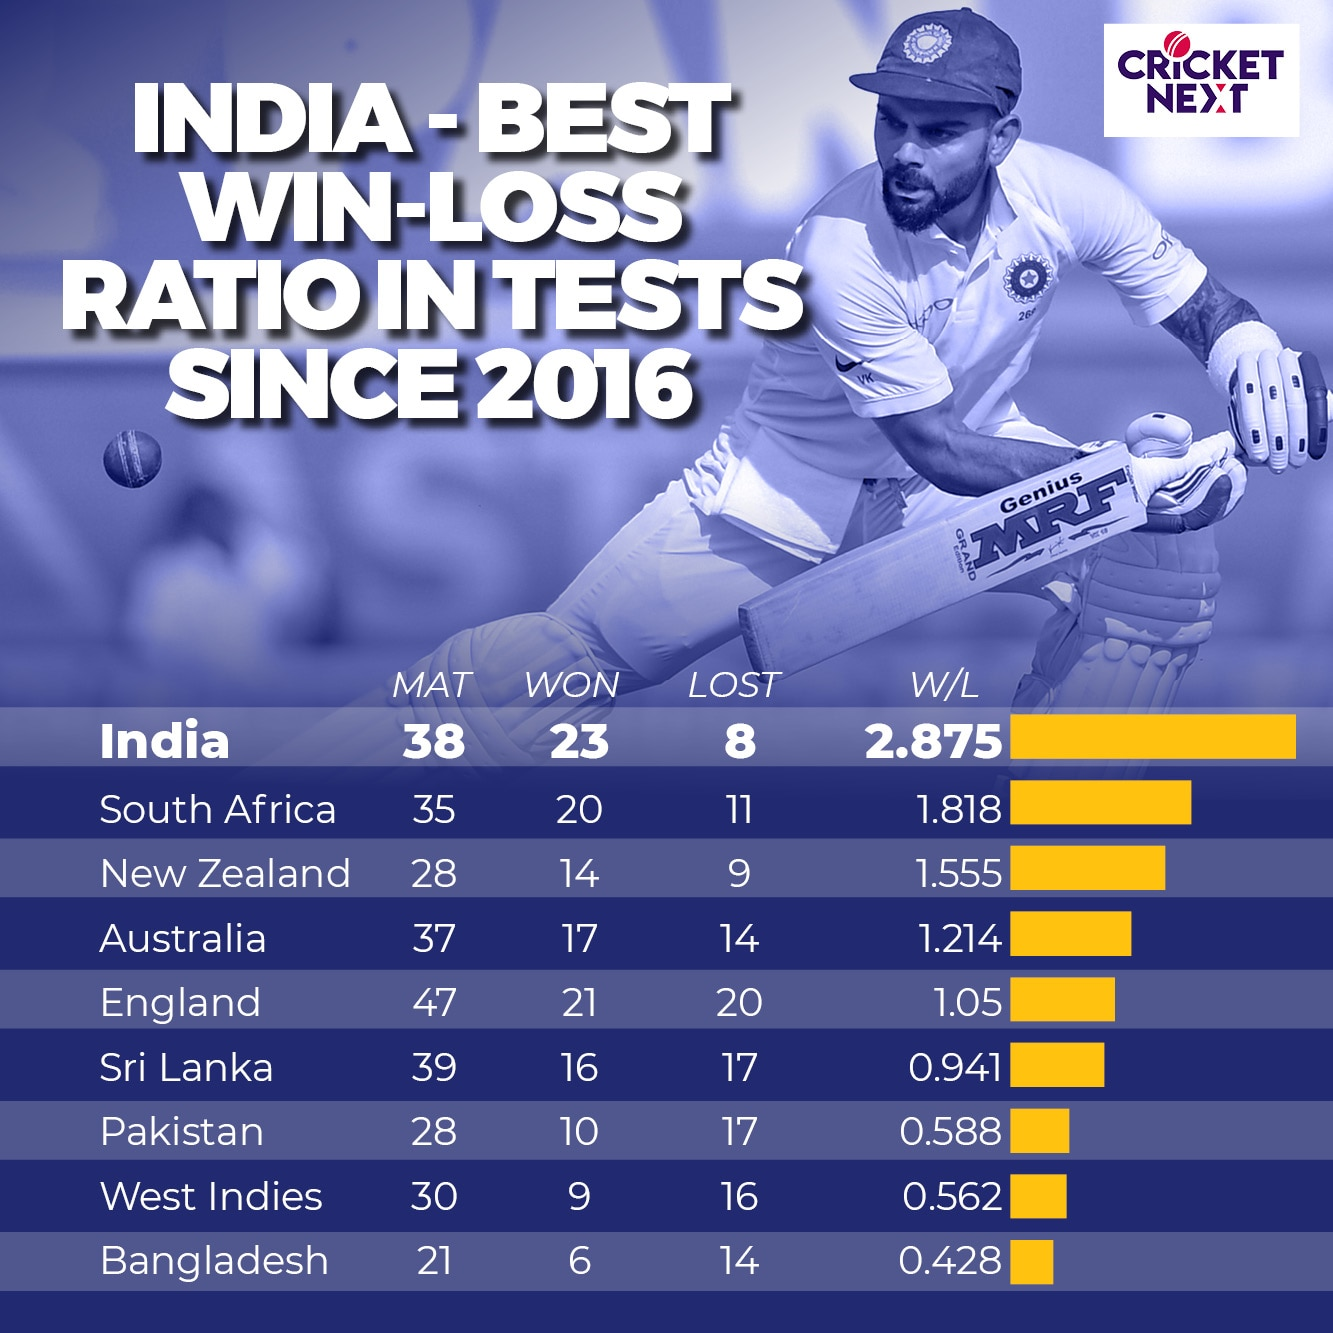 INDIA in Tests since 2016